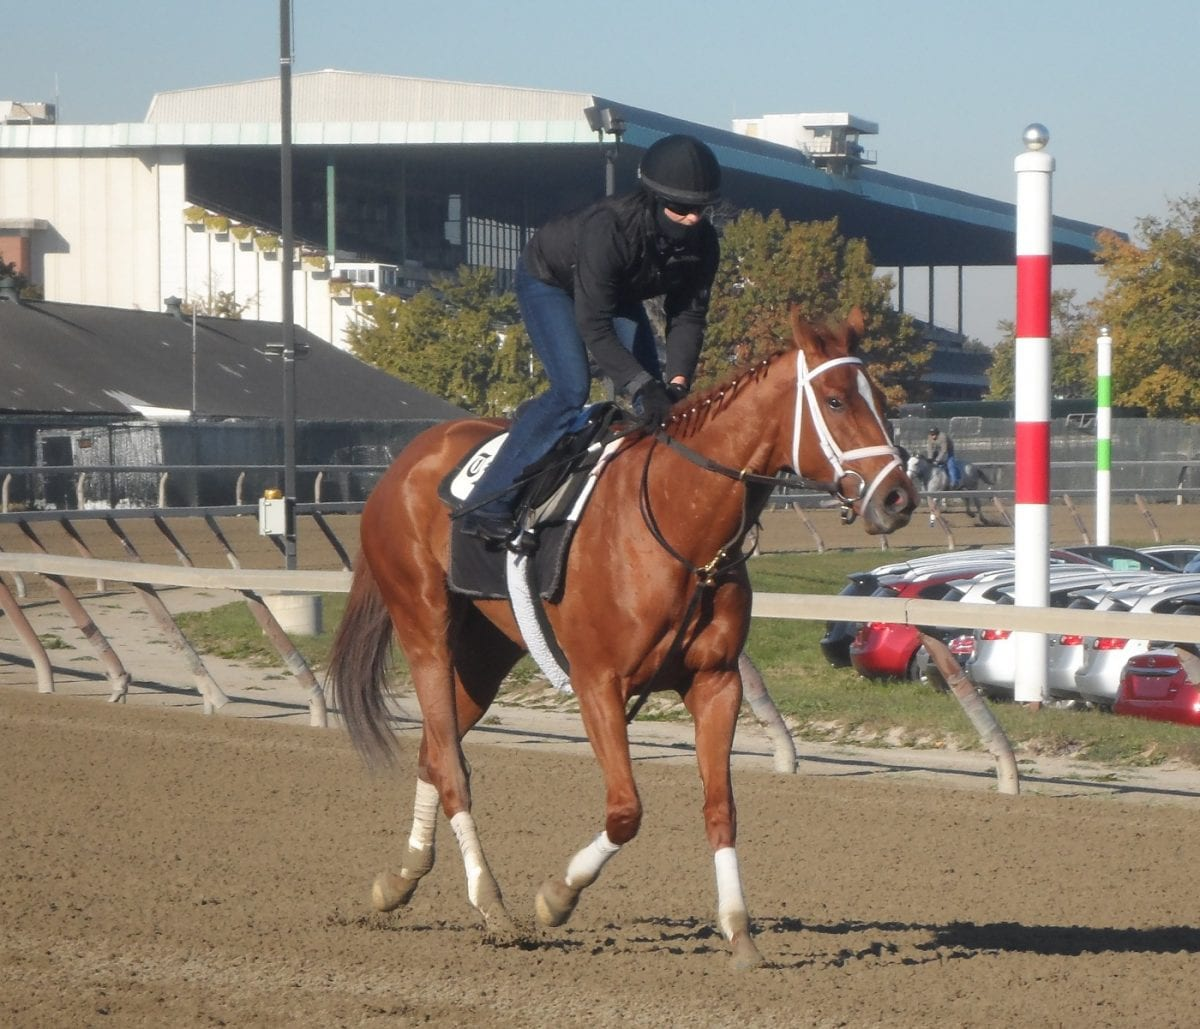 One exercise rider, with two big chances in the Breeders' Cup